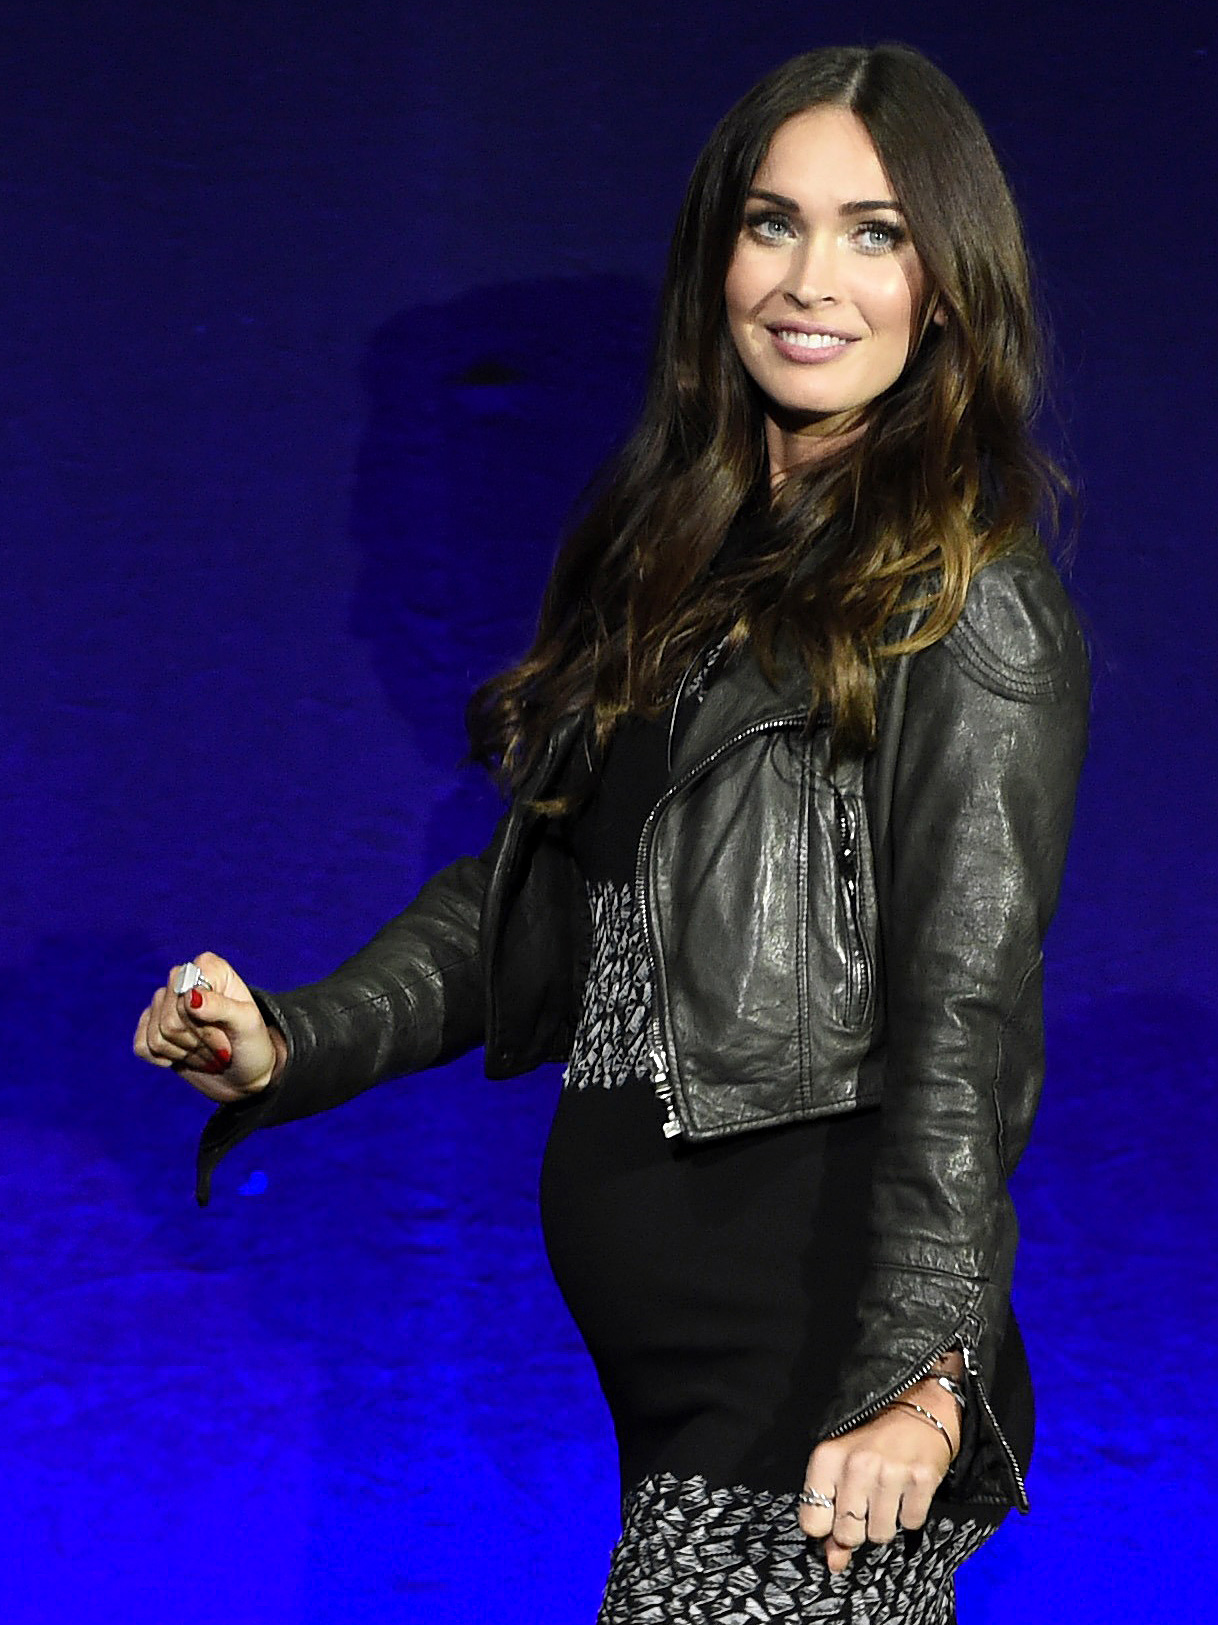 Megan Fox Is Pregnant With Her Third Child